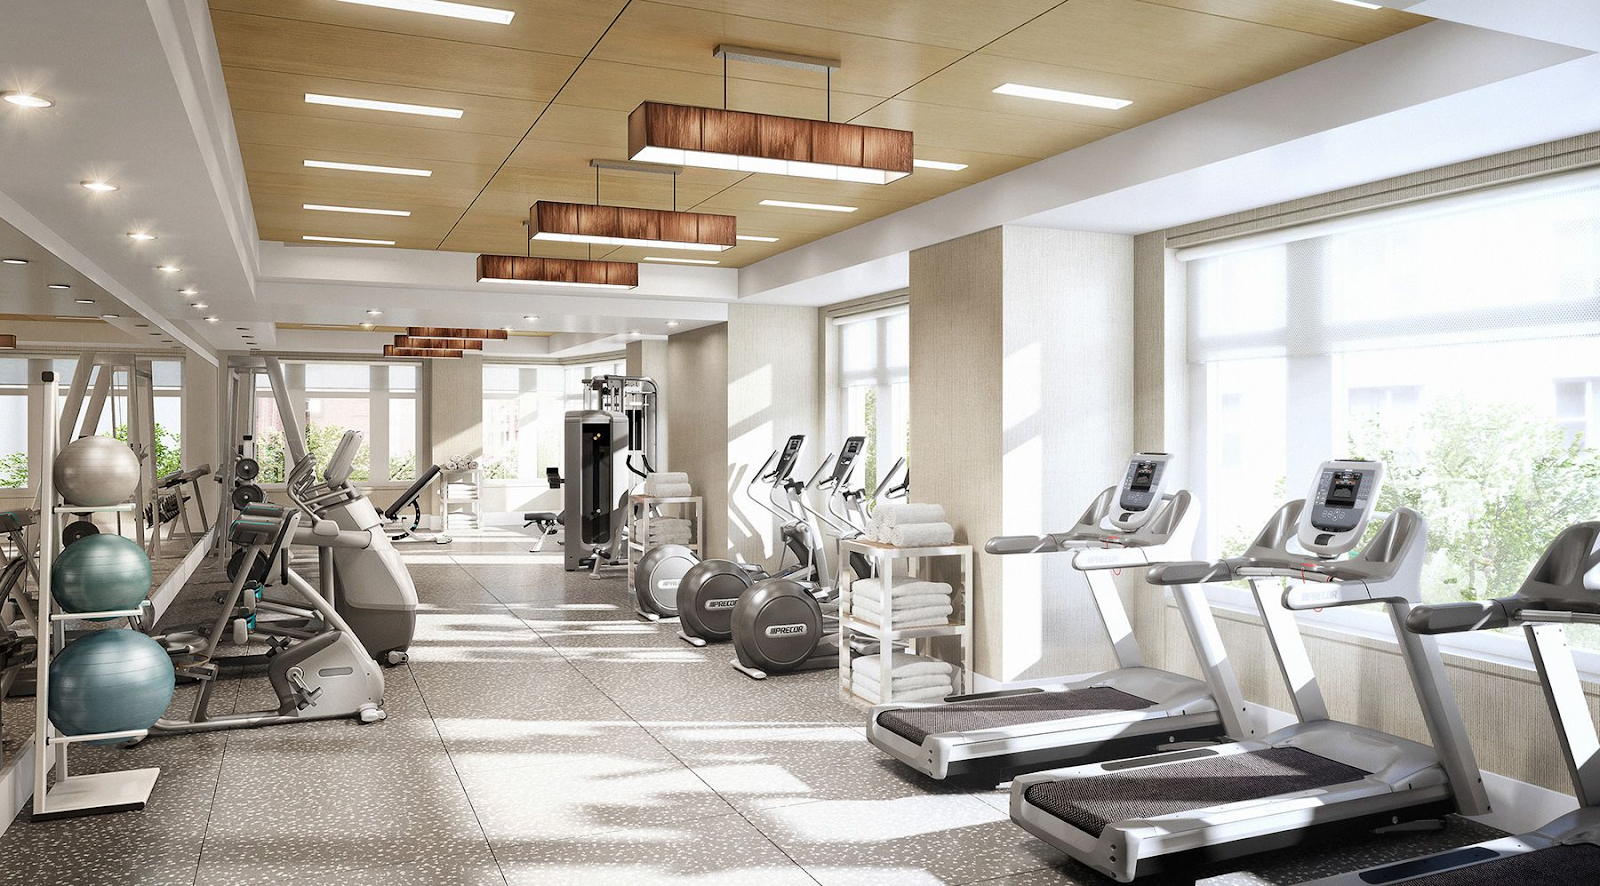 Gym-Rendering-and-what-you-can-earn-from-rendering-fitness?